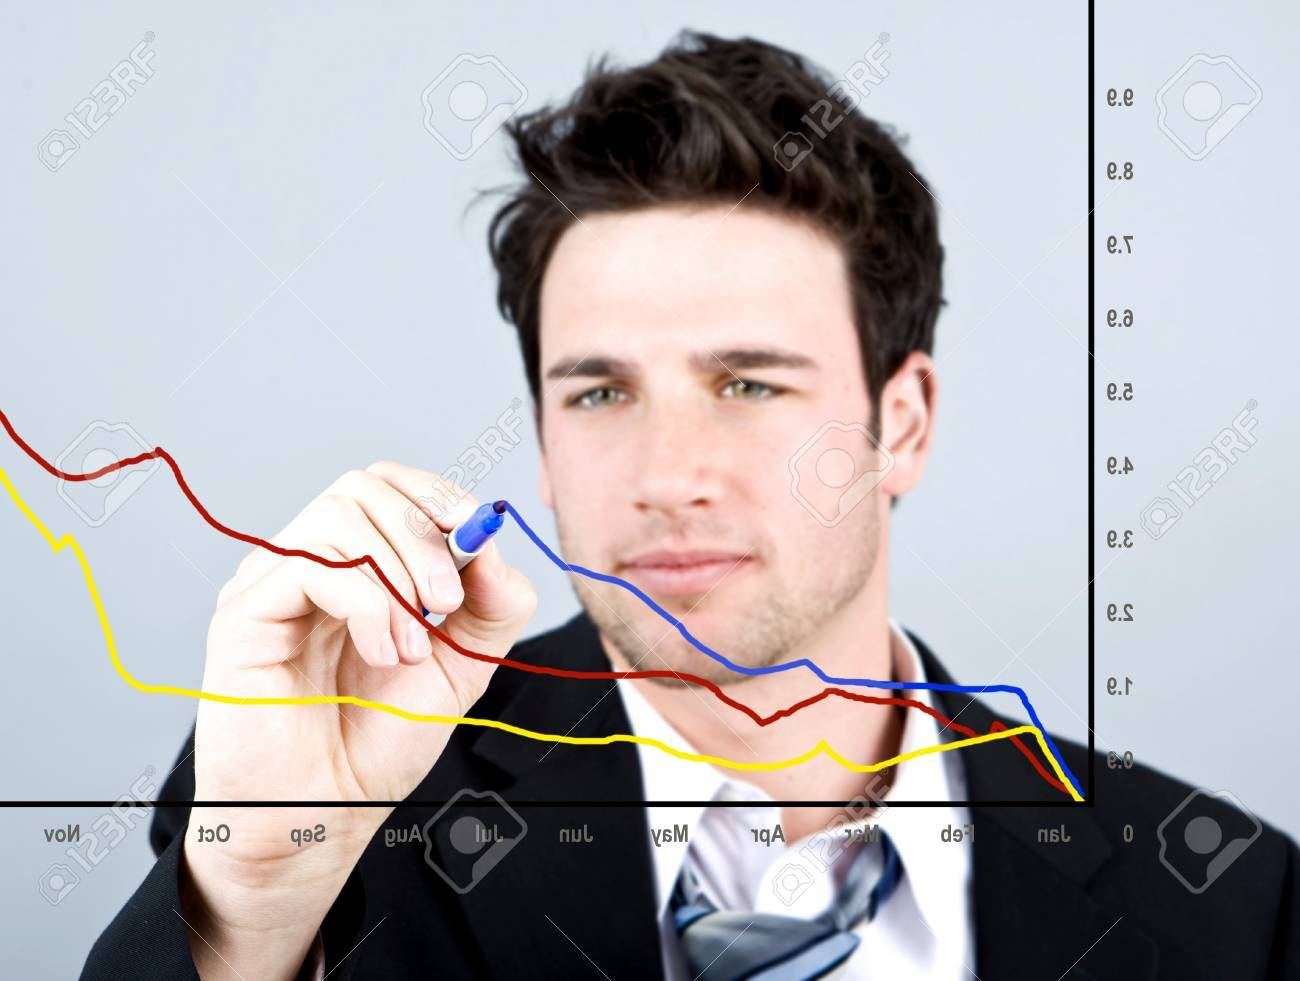 Attractive business man drawing on a graph - 4408779